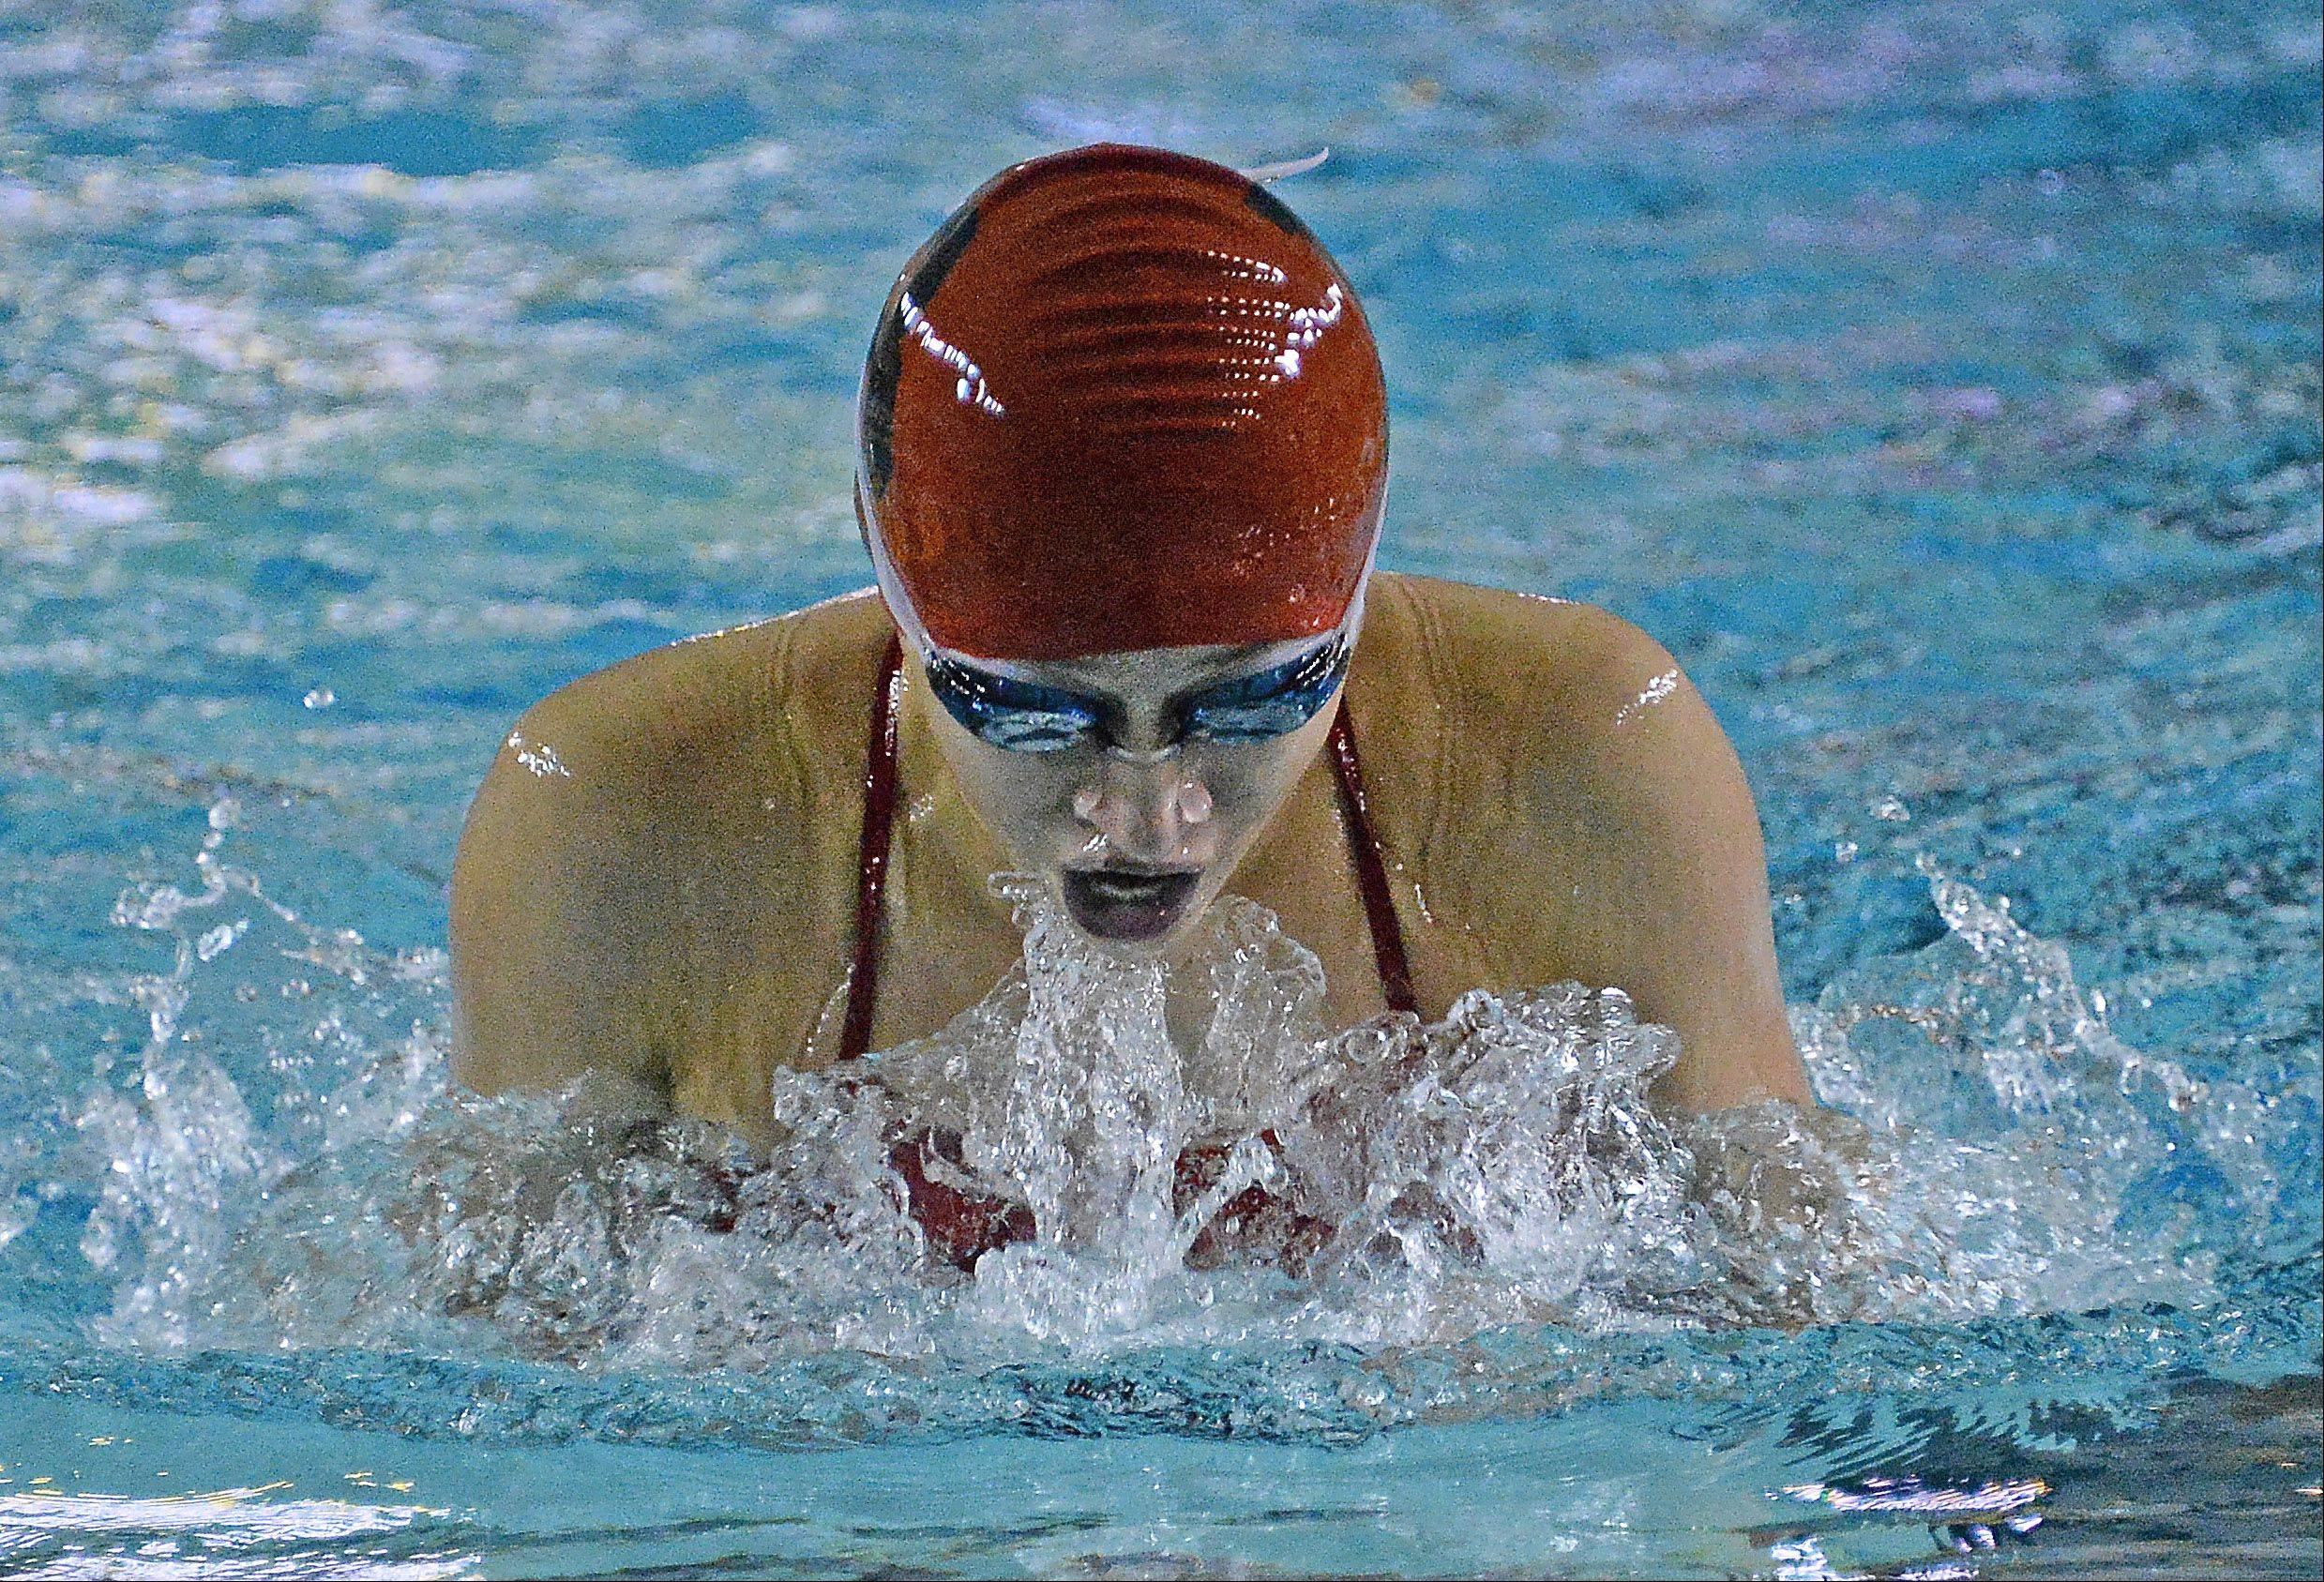 Barrington's Andrea Vega surges to a win in the 100-meter breaststroke at Fremd on Thursday.